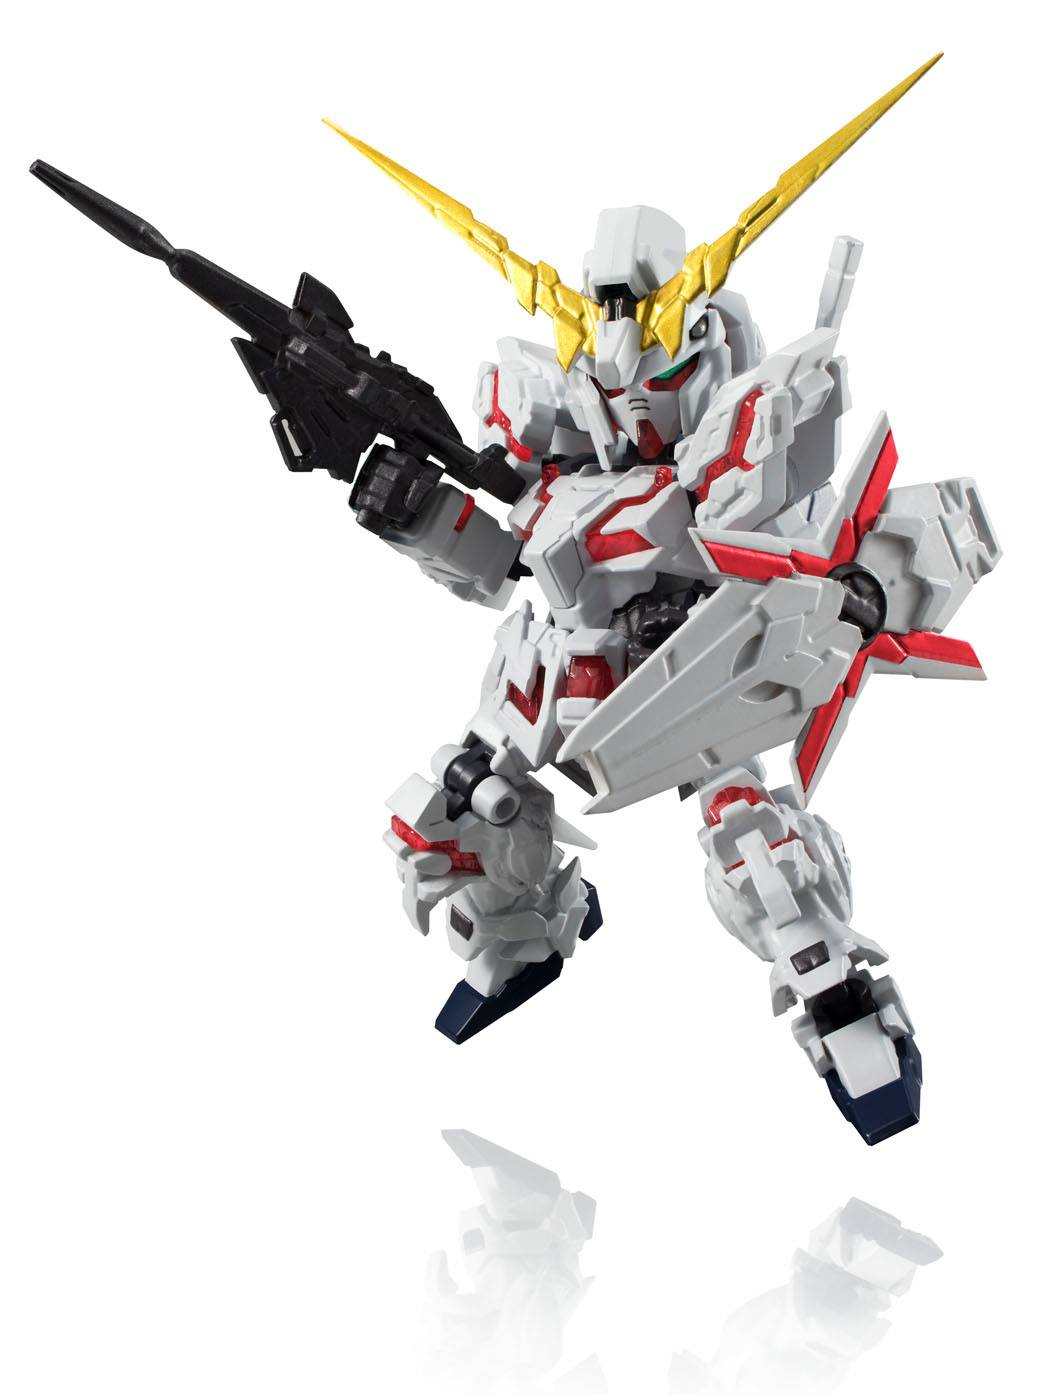 UNICORN GUNDAM DESTROY MODE FIGURA 10 CM GUNDAM UNICORN NXEDGE STYLE